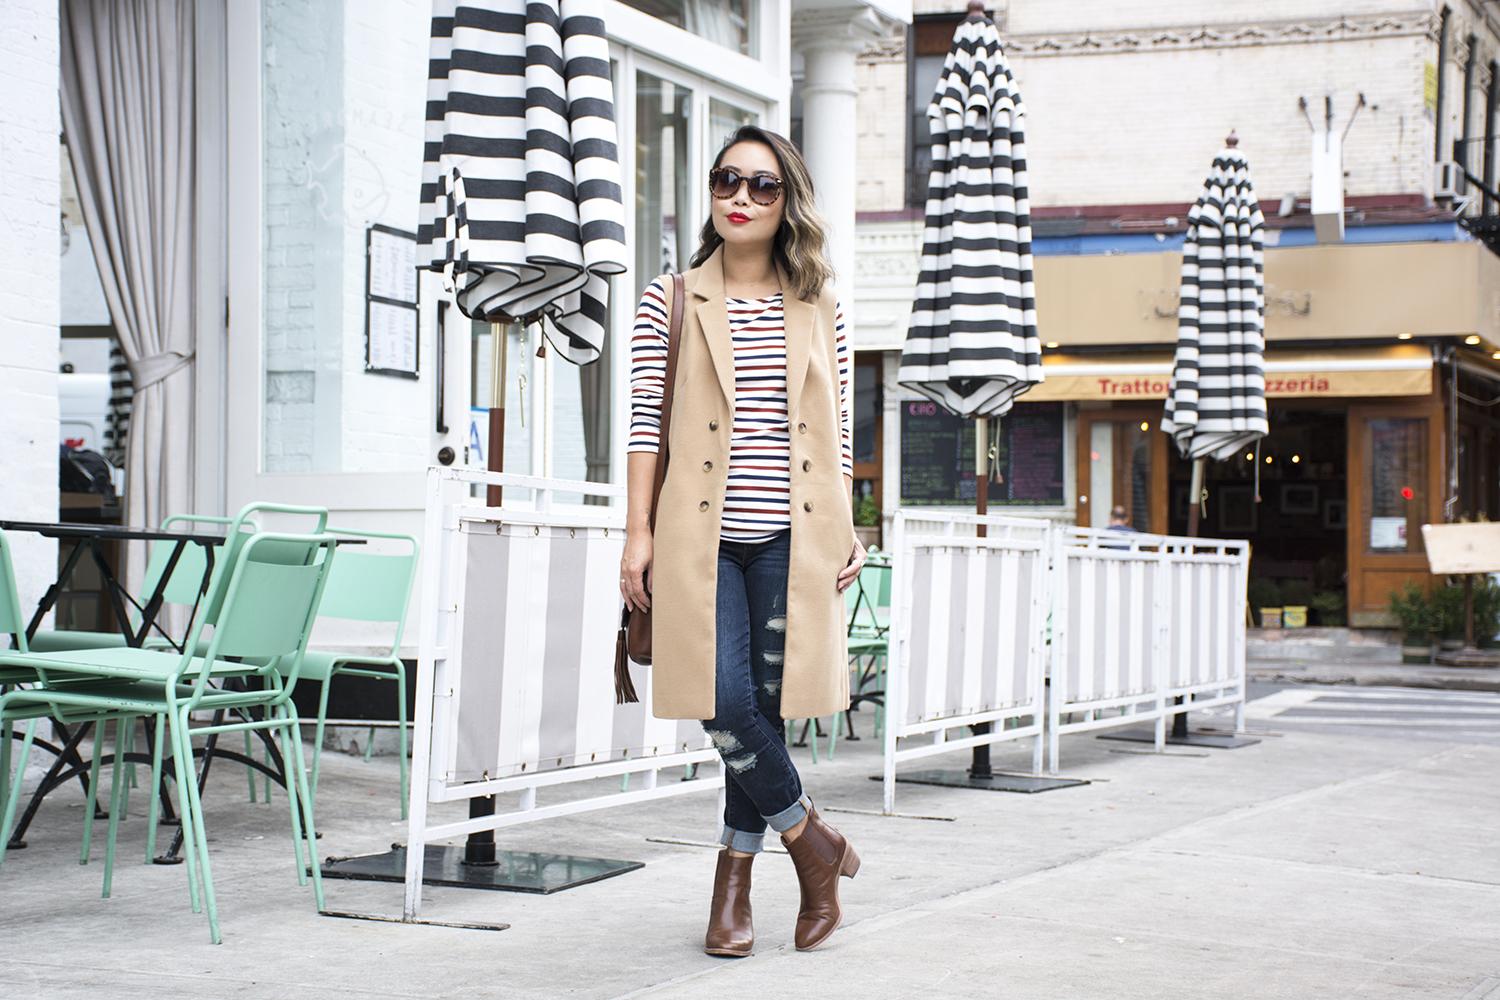 01nyc-newyork-city-stripes-travel-fashion-style